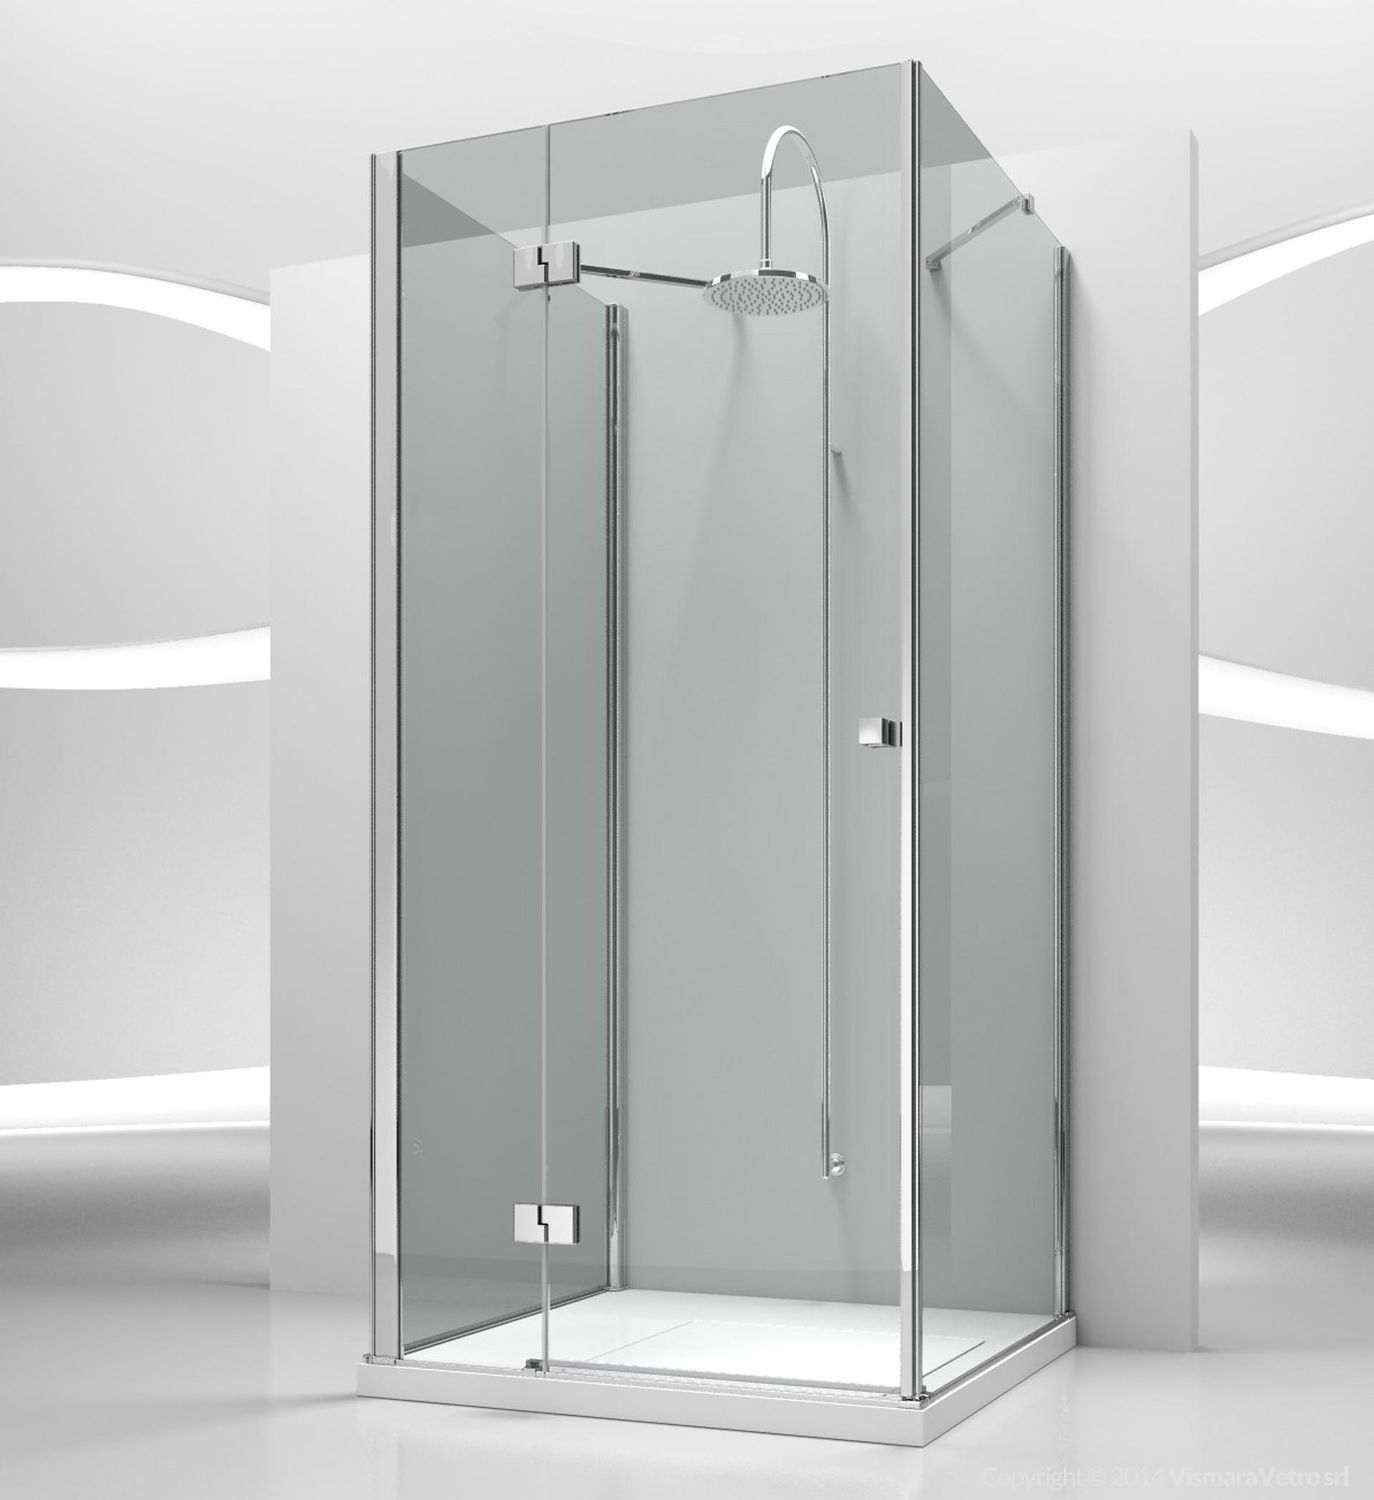 Glass Shower Cubicle Rectangular With Pivot Door